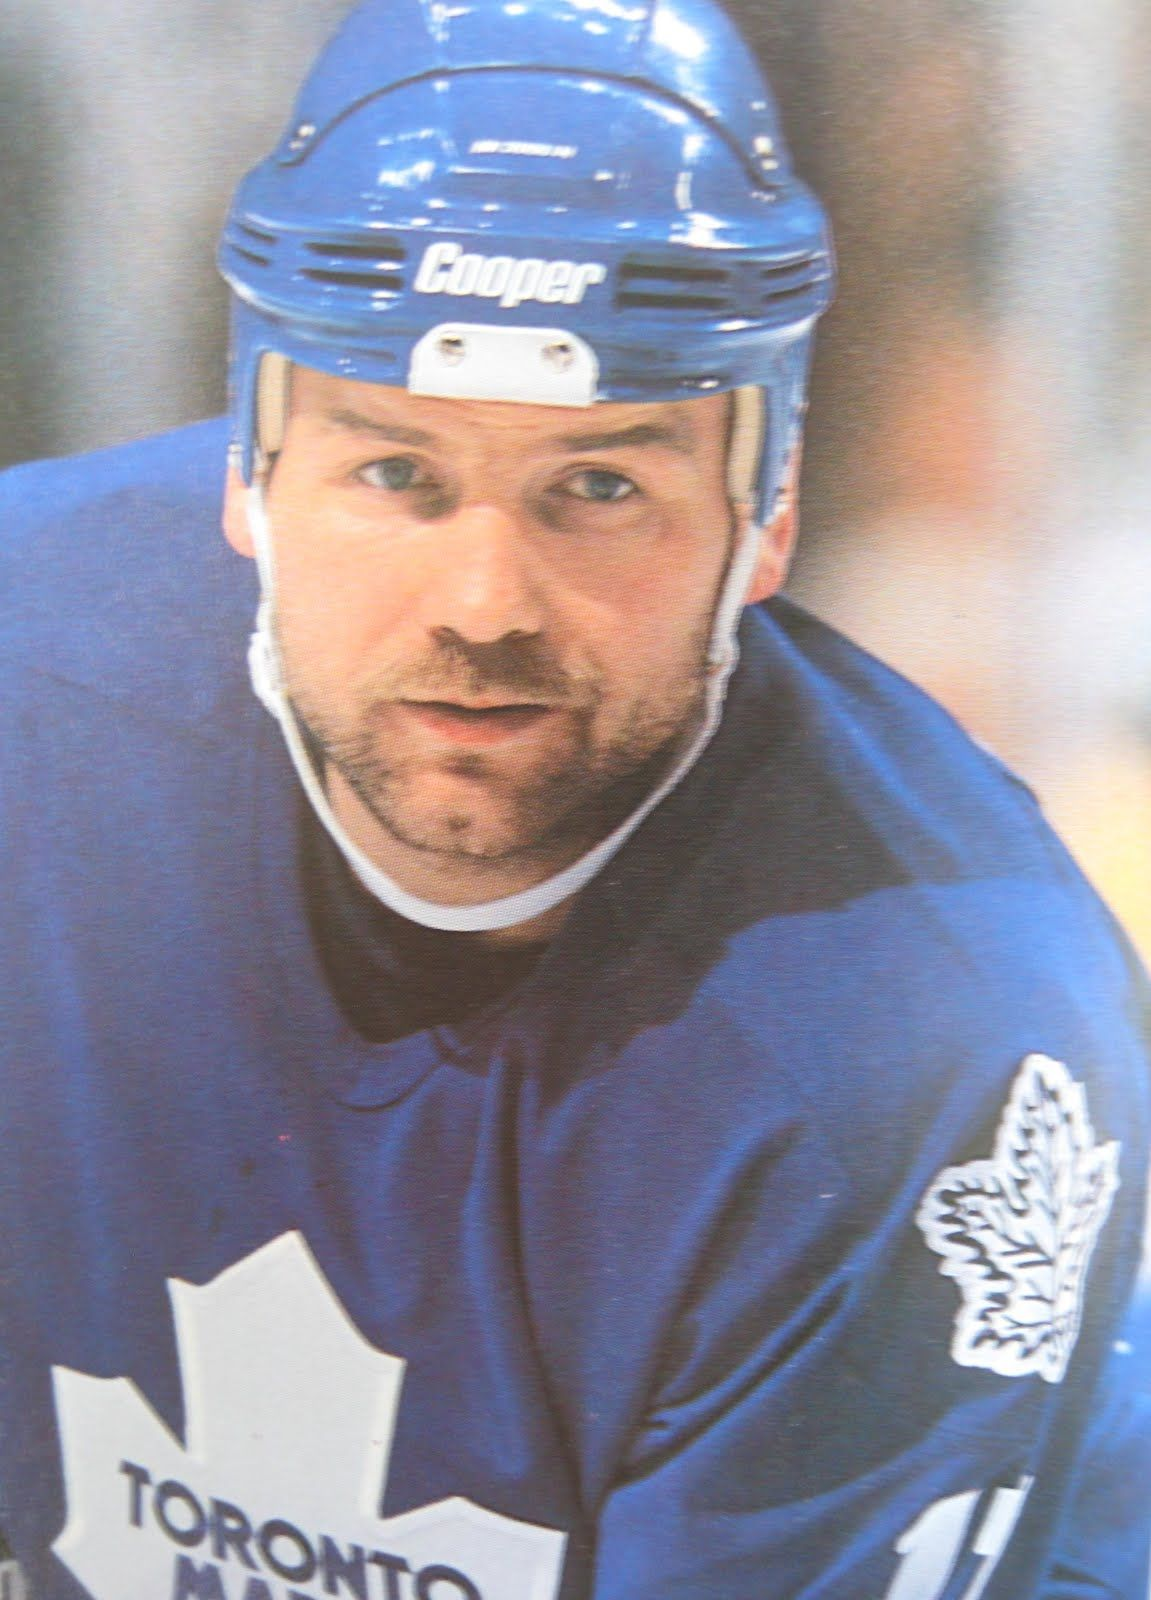 On this game day, we would like to wish former Leafs